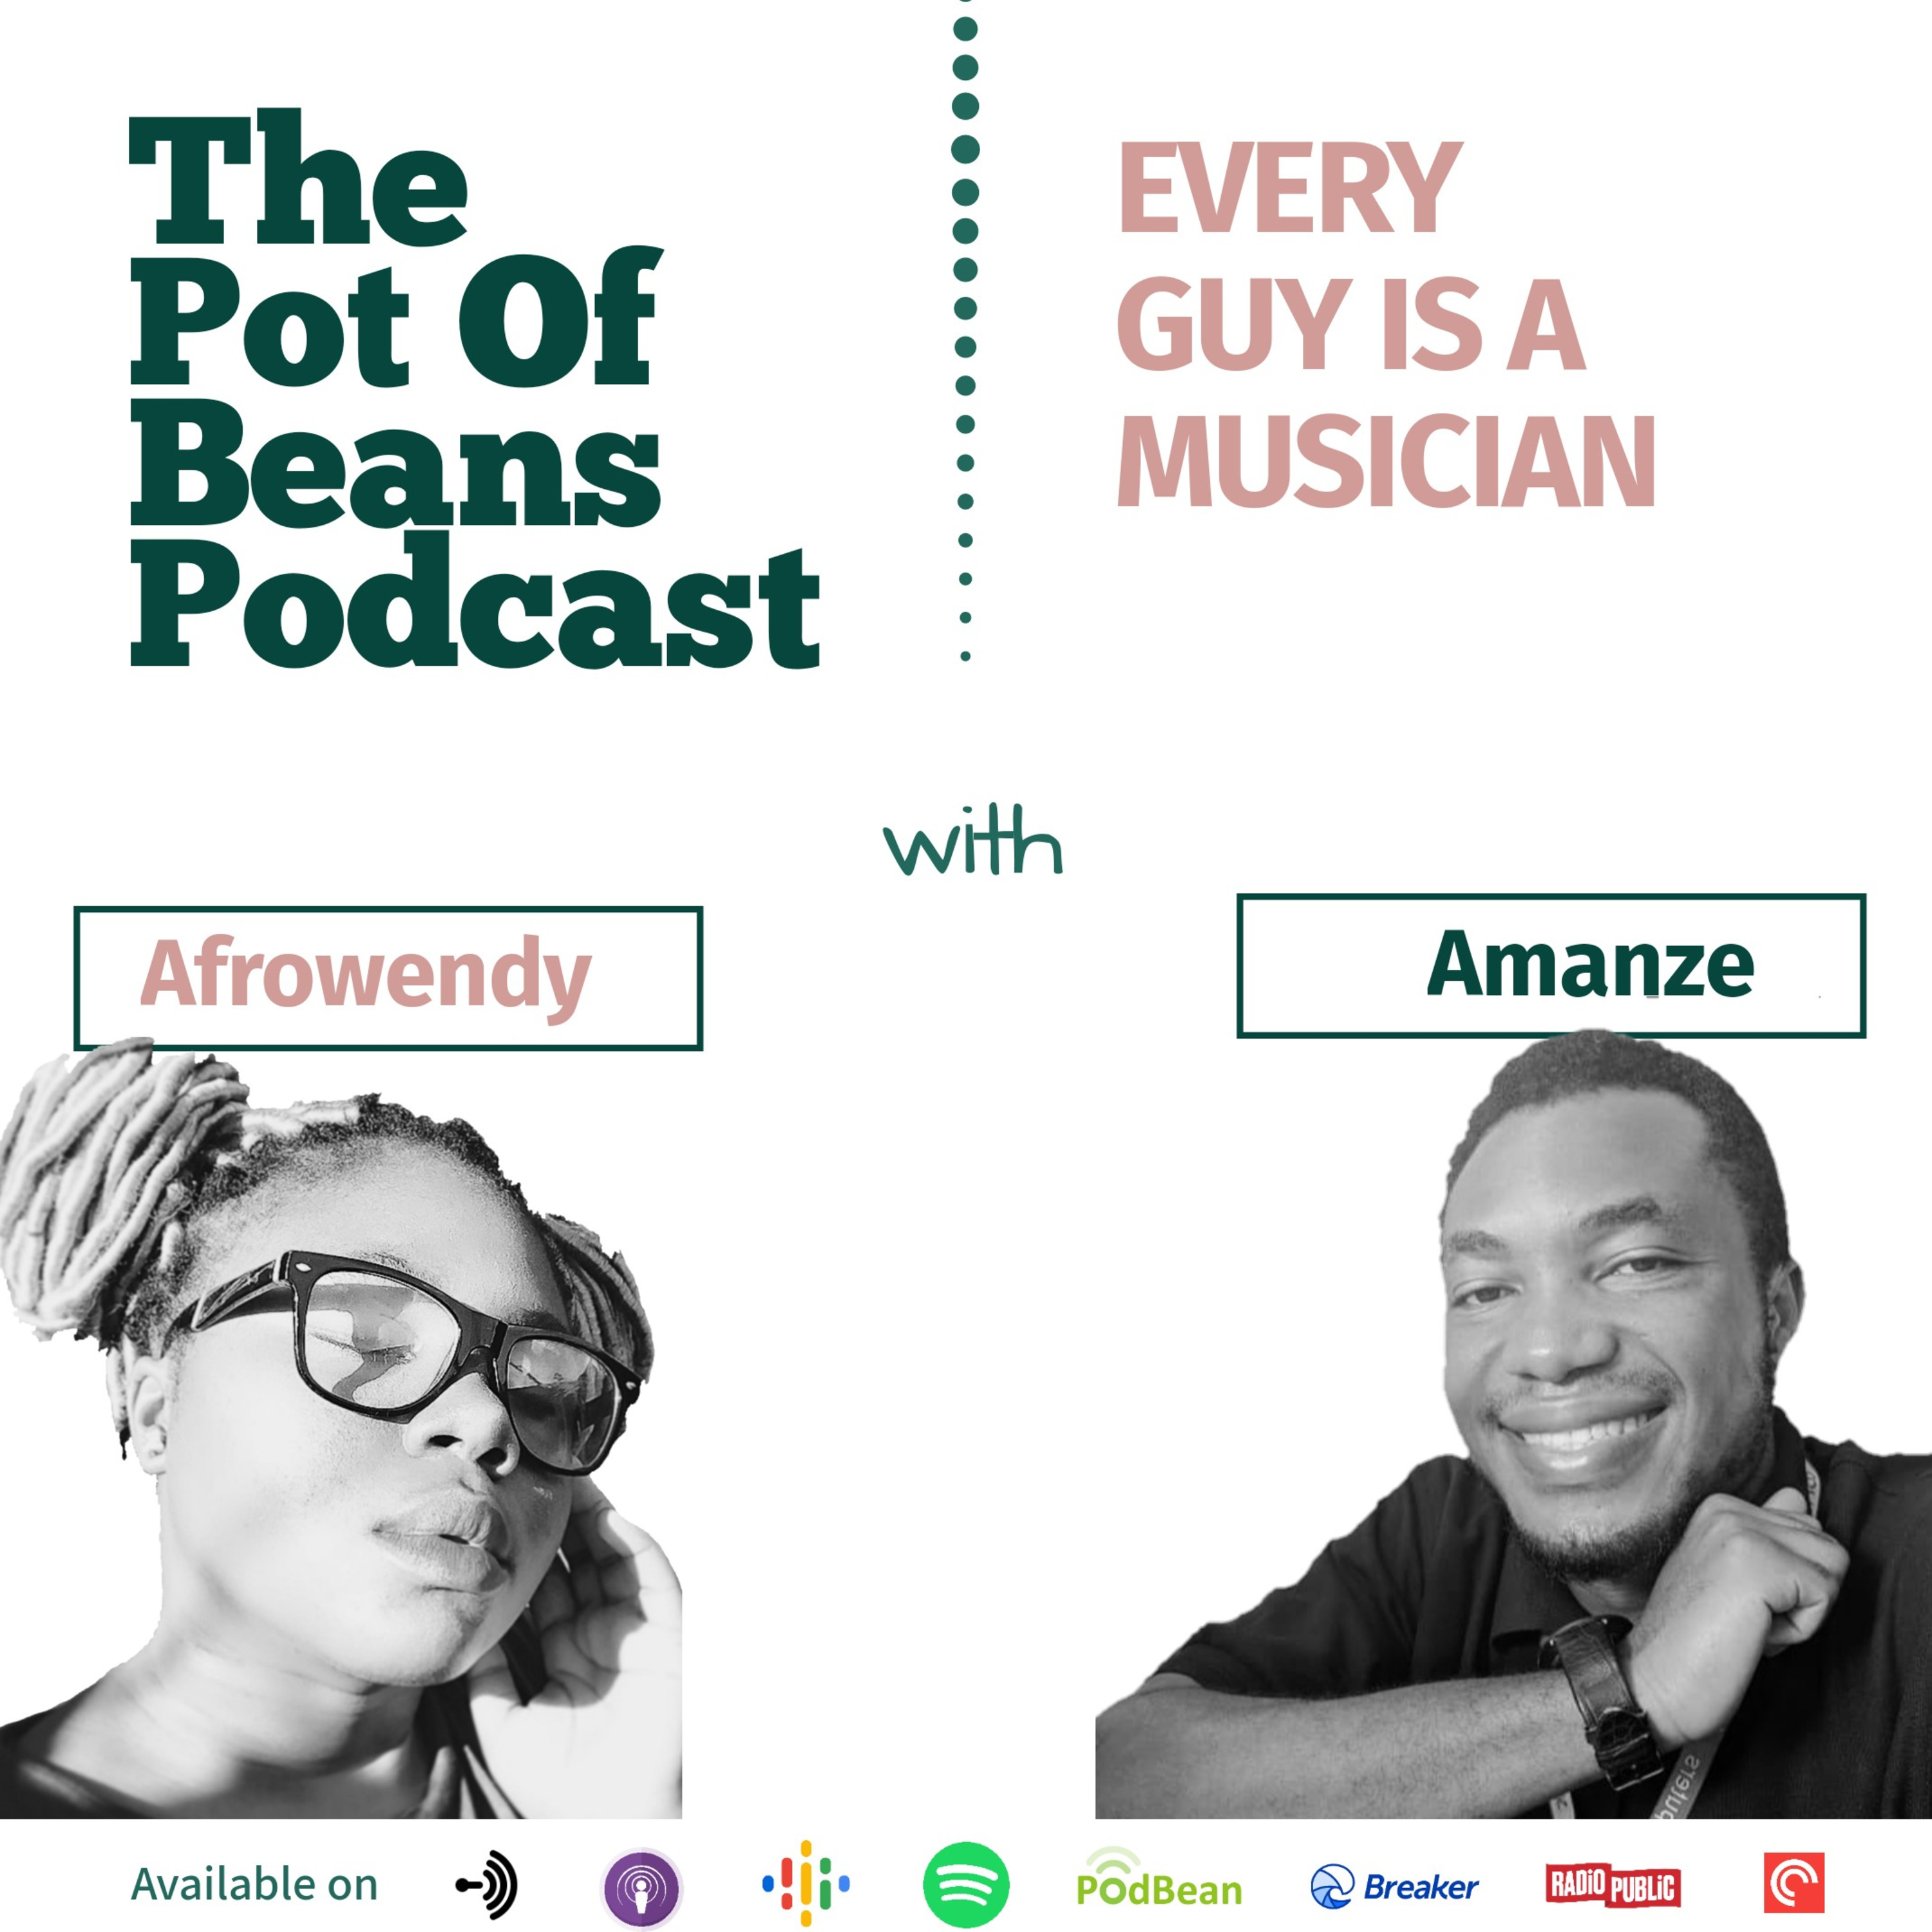 The Pot Of Beans Podcast on Jamit